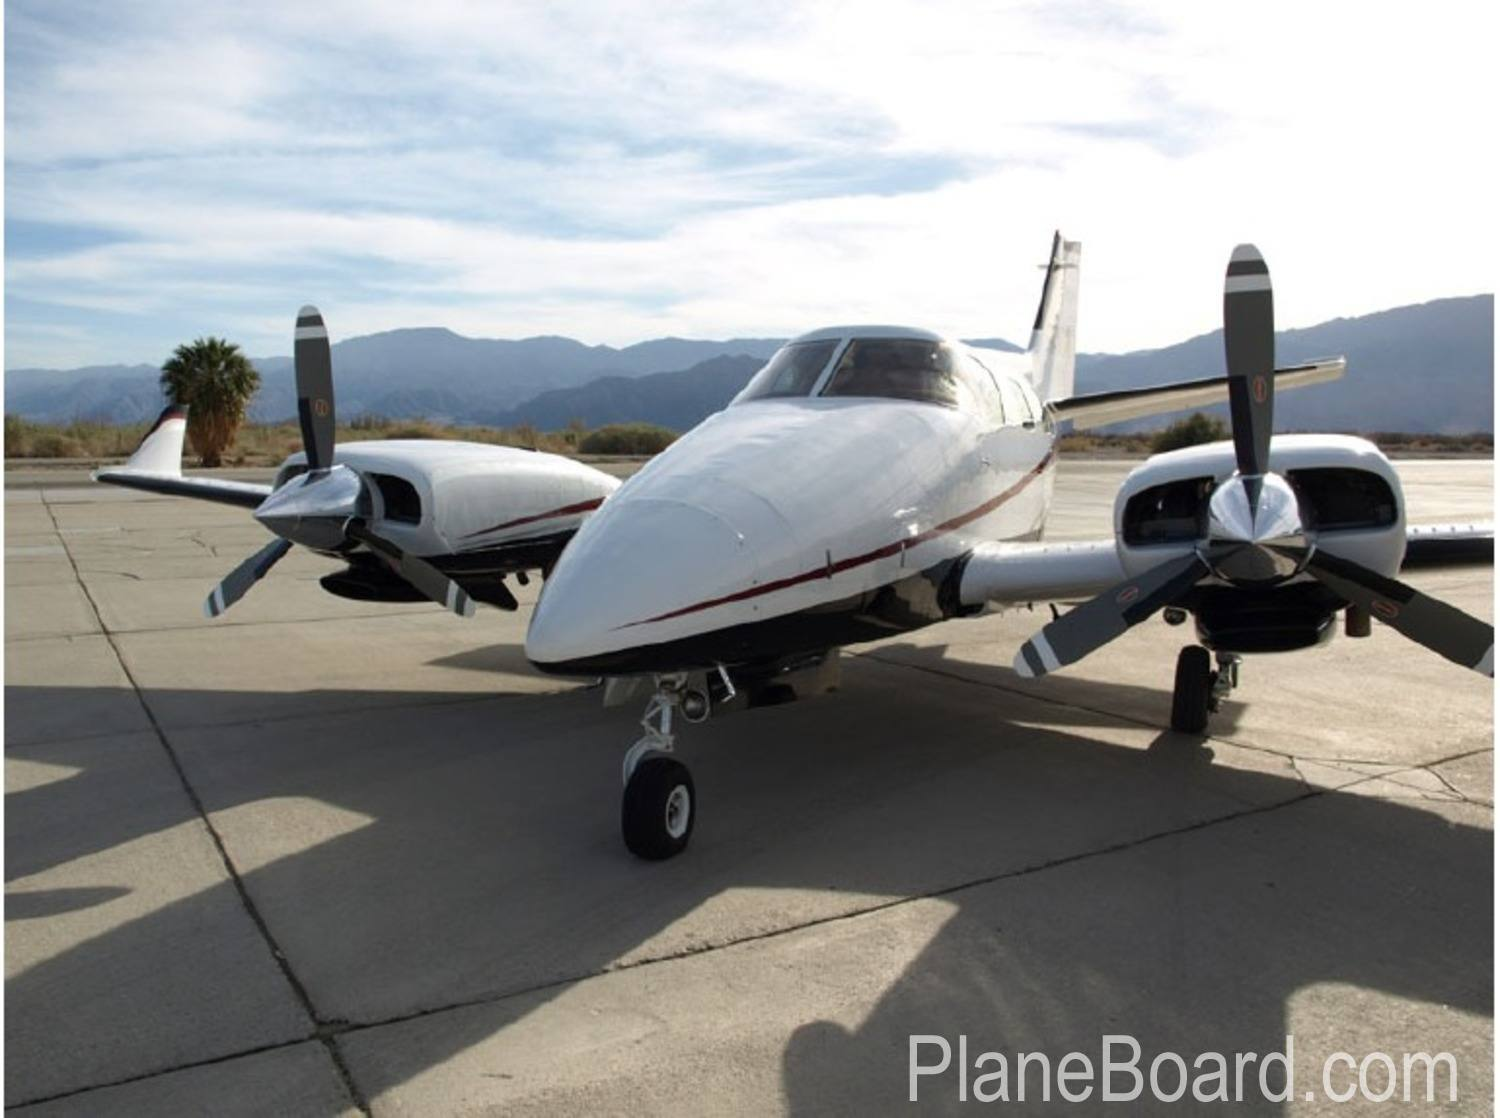 1975 Beechcraft B60 Duke primary